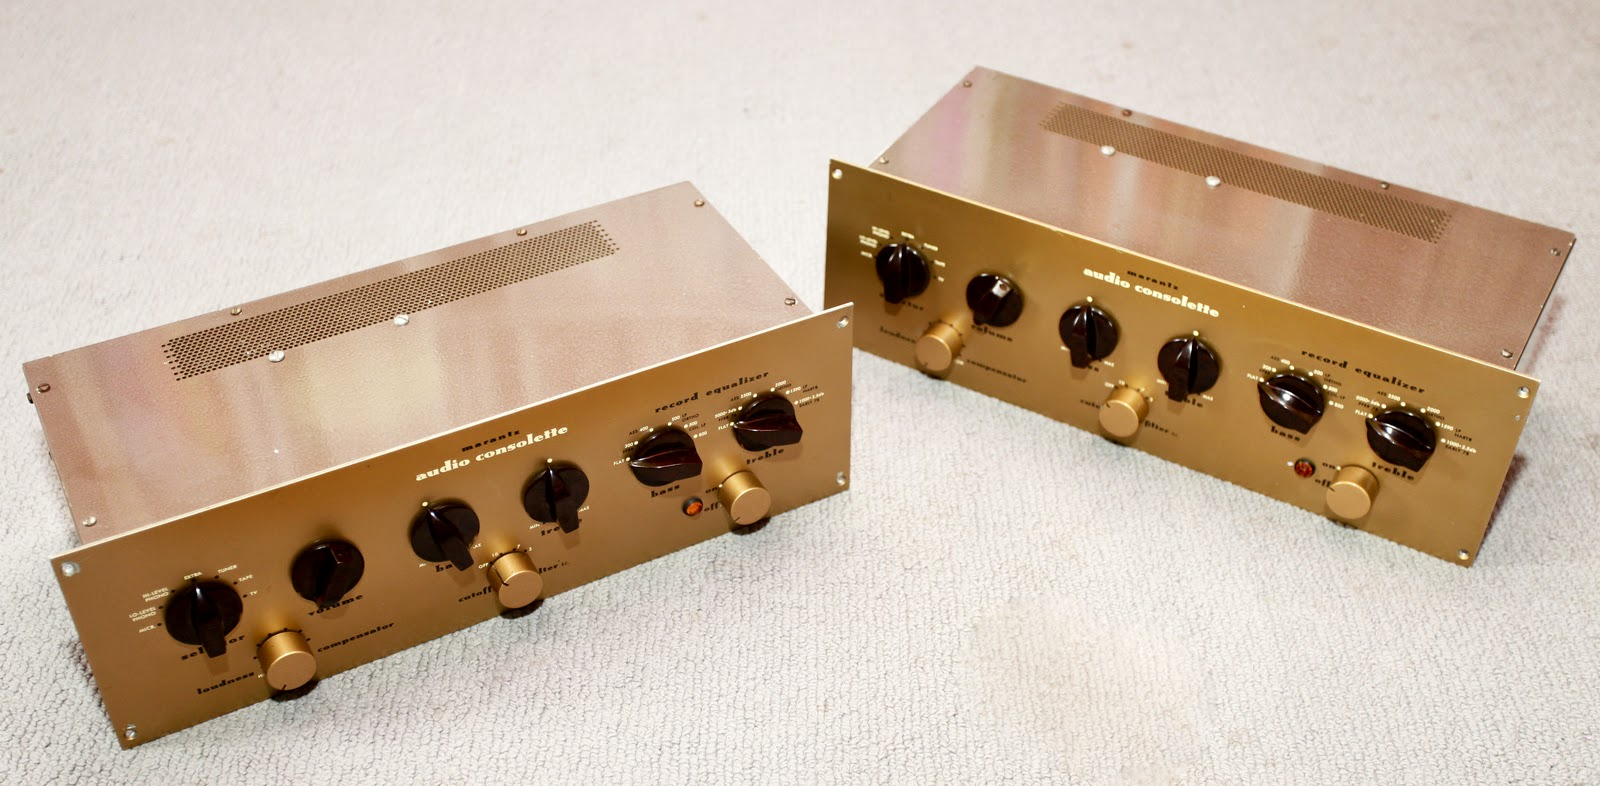 marantz model one protopype